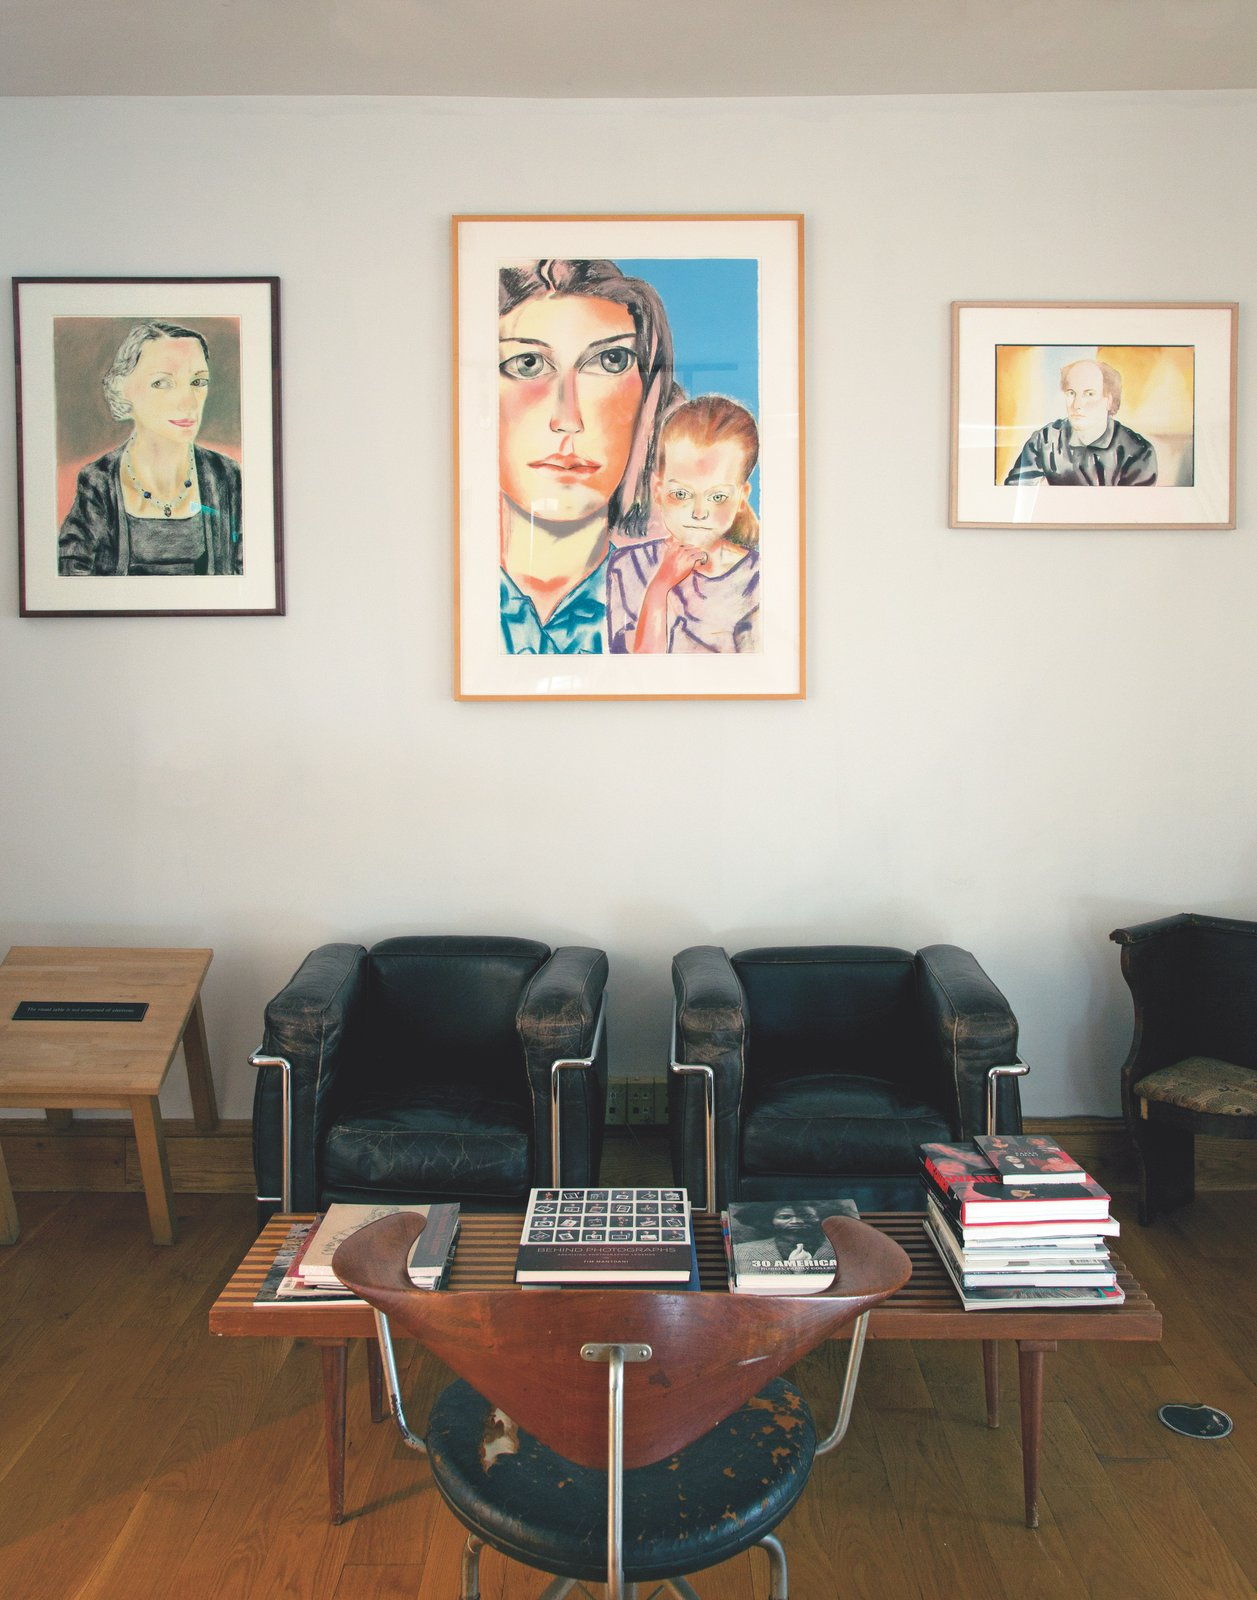 Timothy Greenfield-Sanders and his wife purchased a former church rectory in New York's East Village in 1978—years before the art scene exploded in the neighborhood. A series of family portraits by fellow artist Francesco Clemente hang above a reading area furnished with well-worn LC50 armchairs by Le Corbusier, a bench coffee table by George Nelson, and a rare Hans Wegner swivel chair. The side table to the left is a piece by conceptual artist Joseph Kosuth.  Heavenly Converted Churches by William Harrison